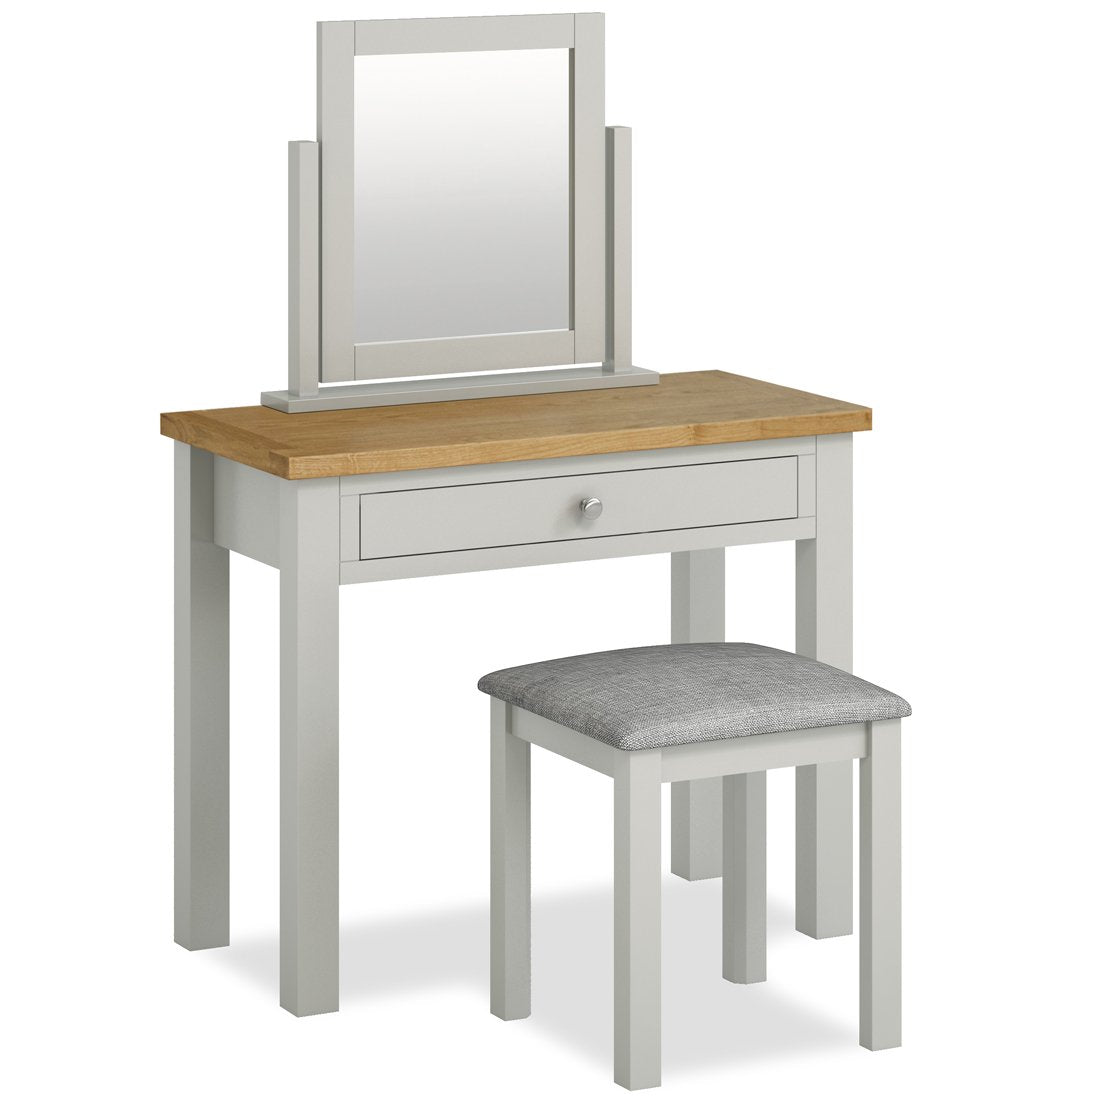 Oak & Solid Wood Bedroom Dressing Tables, Stools & Mirrors - Roseland Furniture